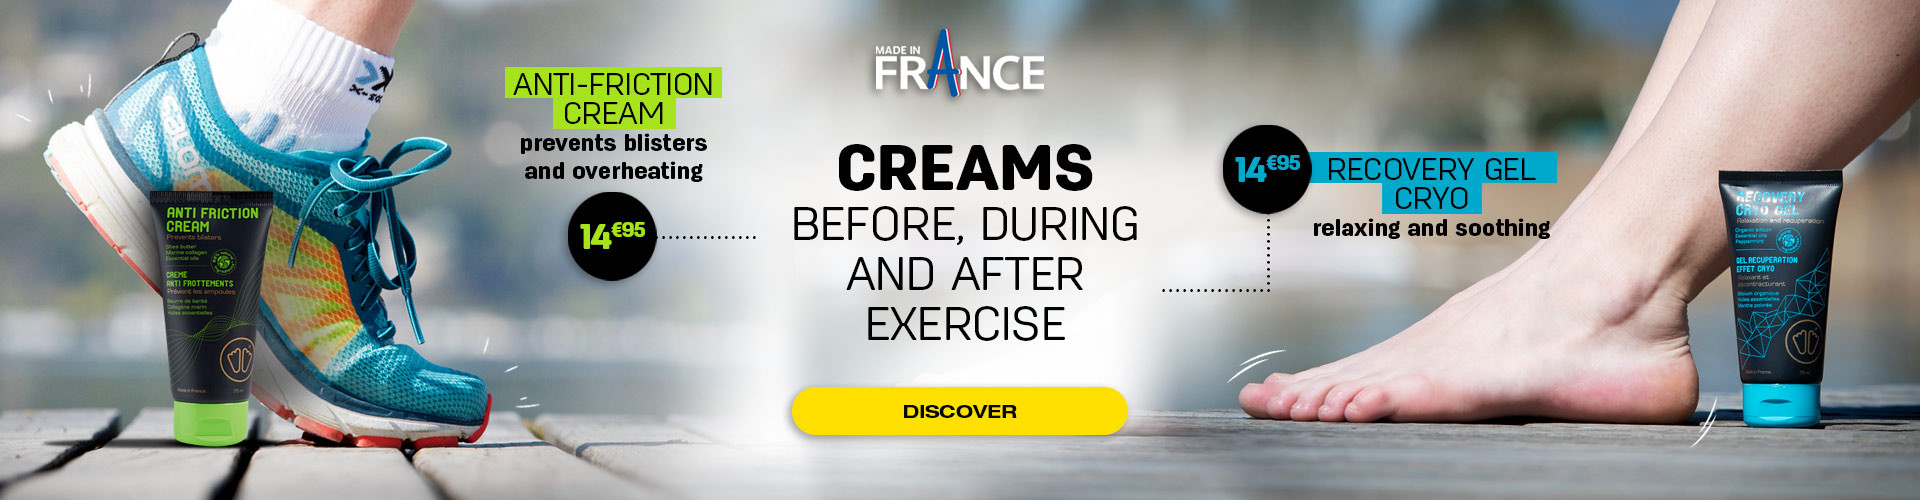 Creams before, during and after exercise